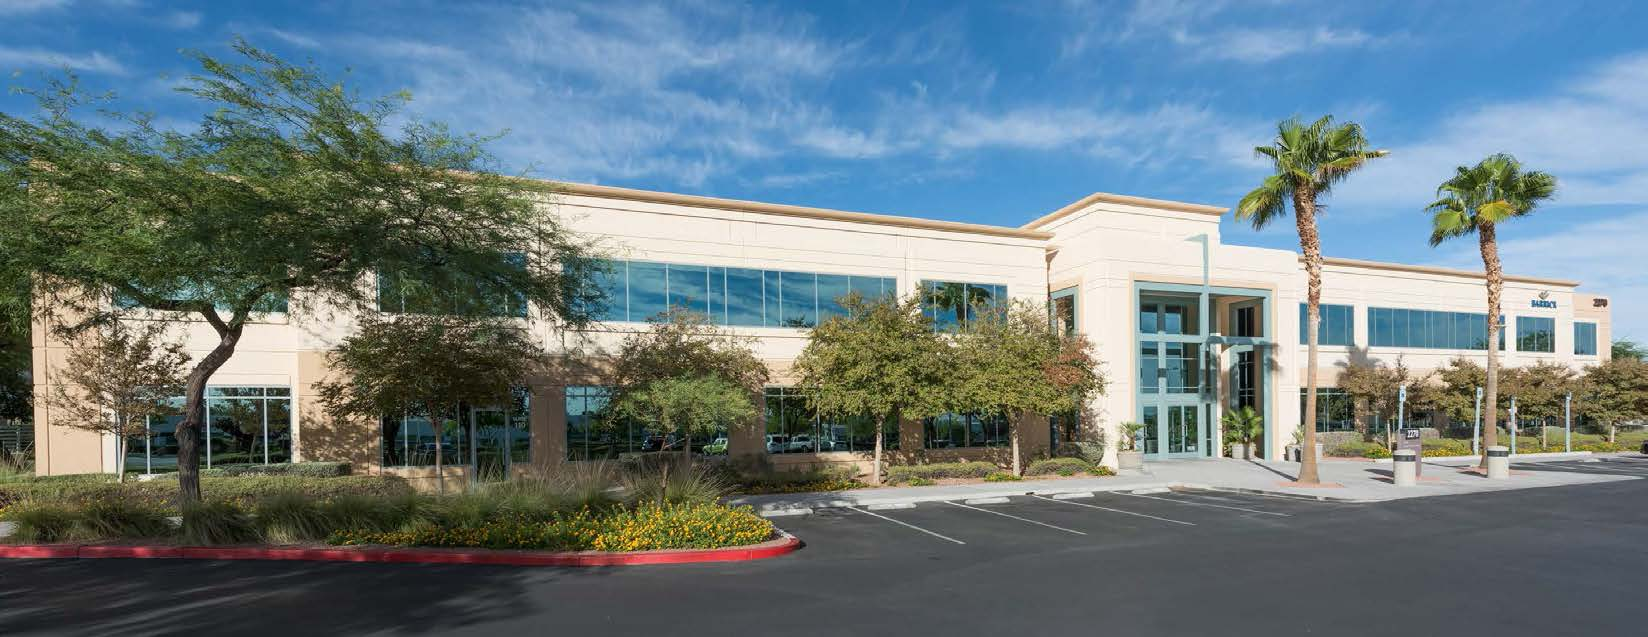 2270 Corporate Circle, Henderson, NV 89074